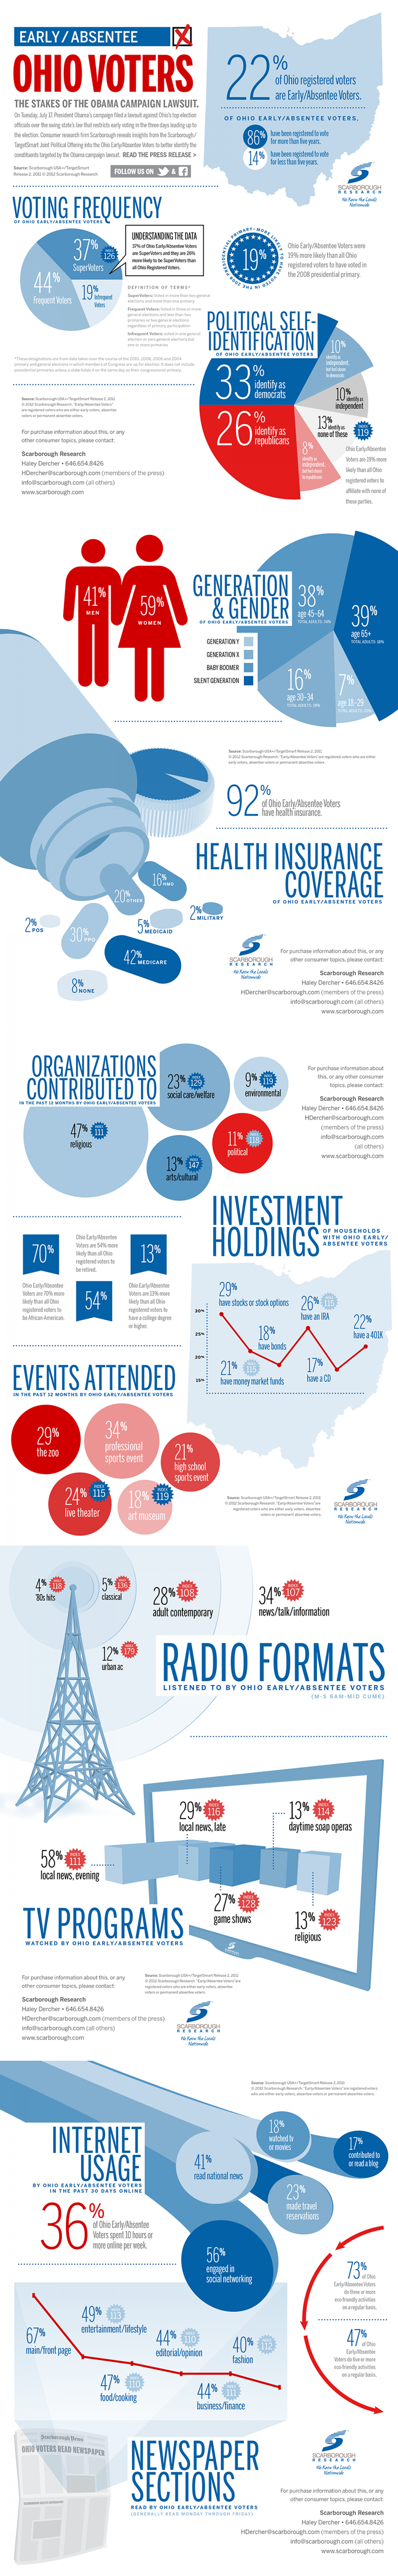 Early/Absentee Ohio Voters Infographic